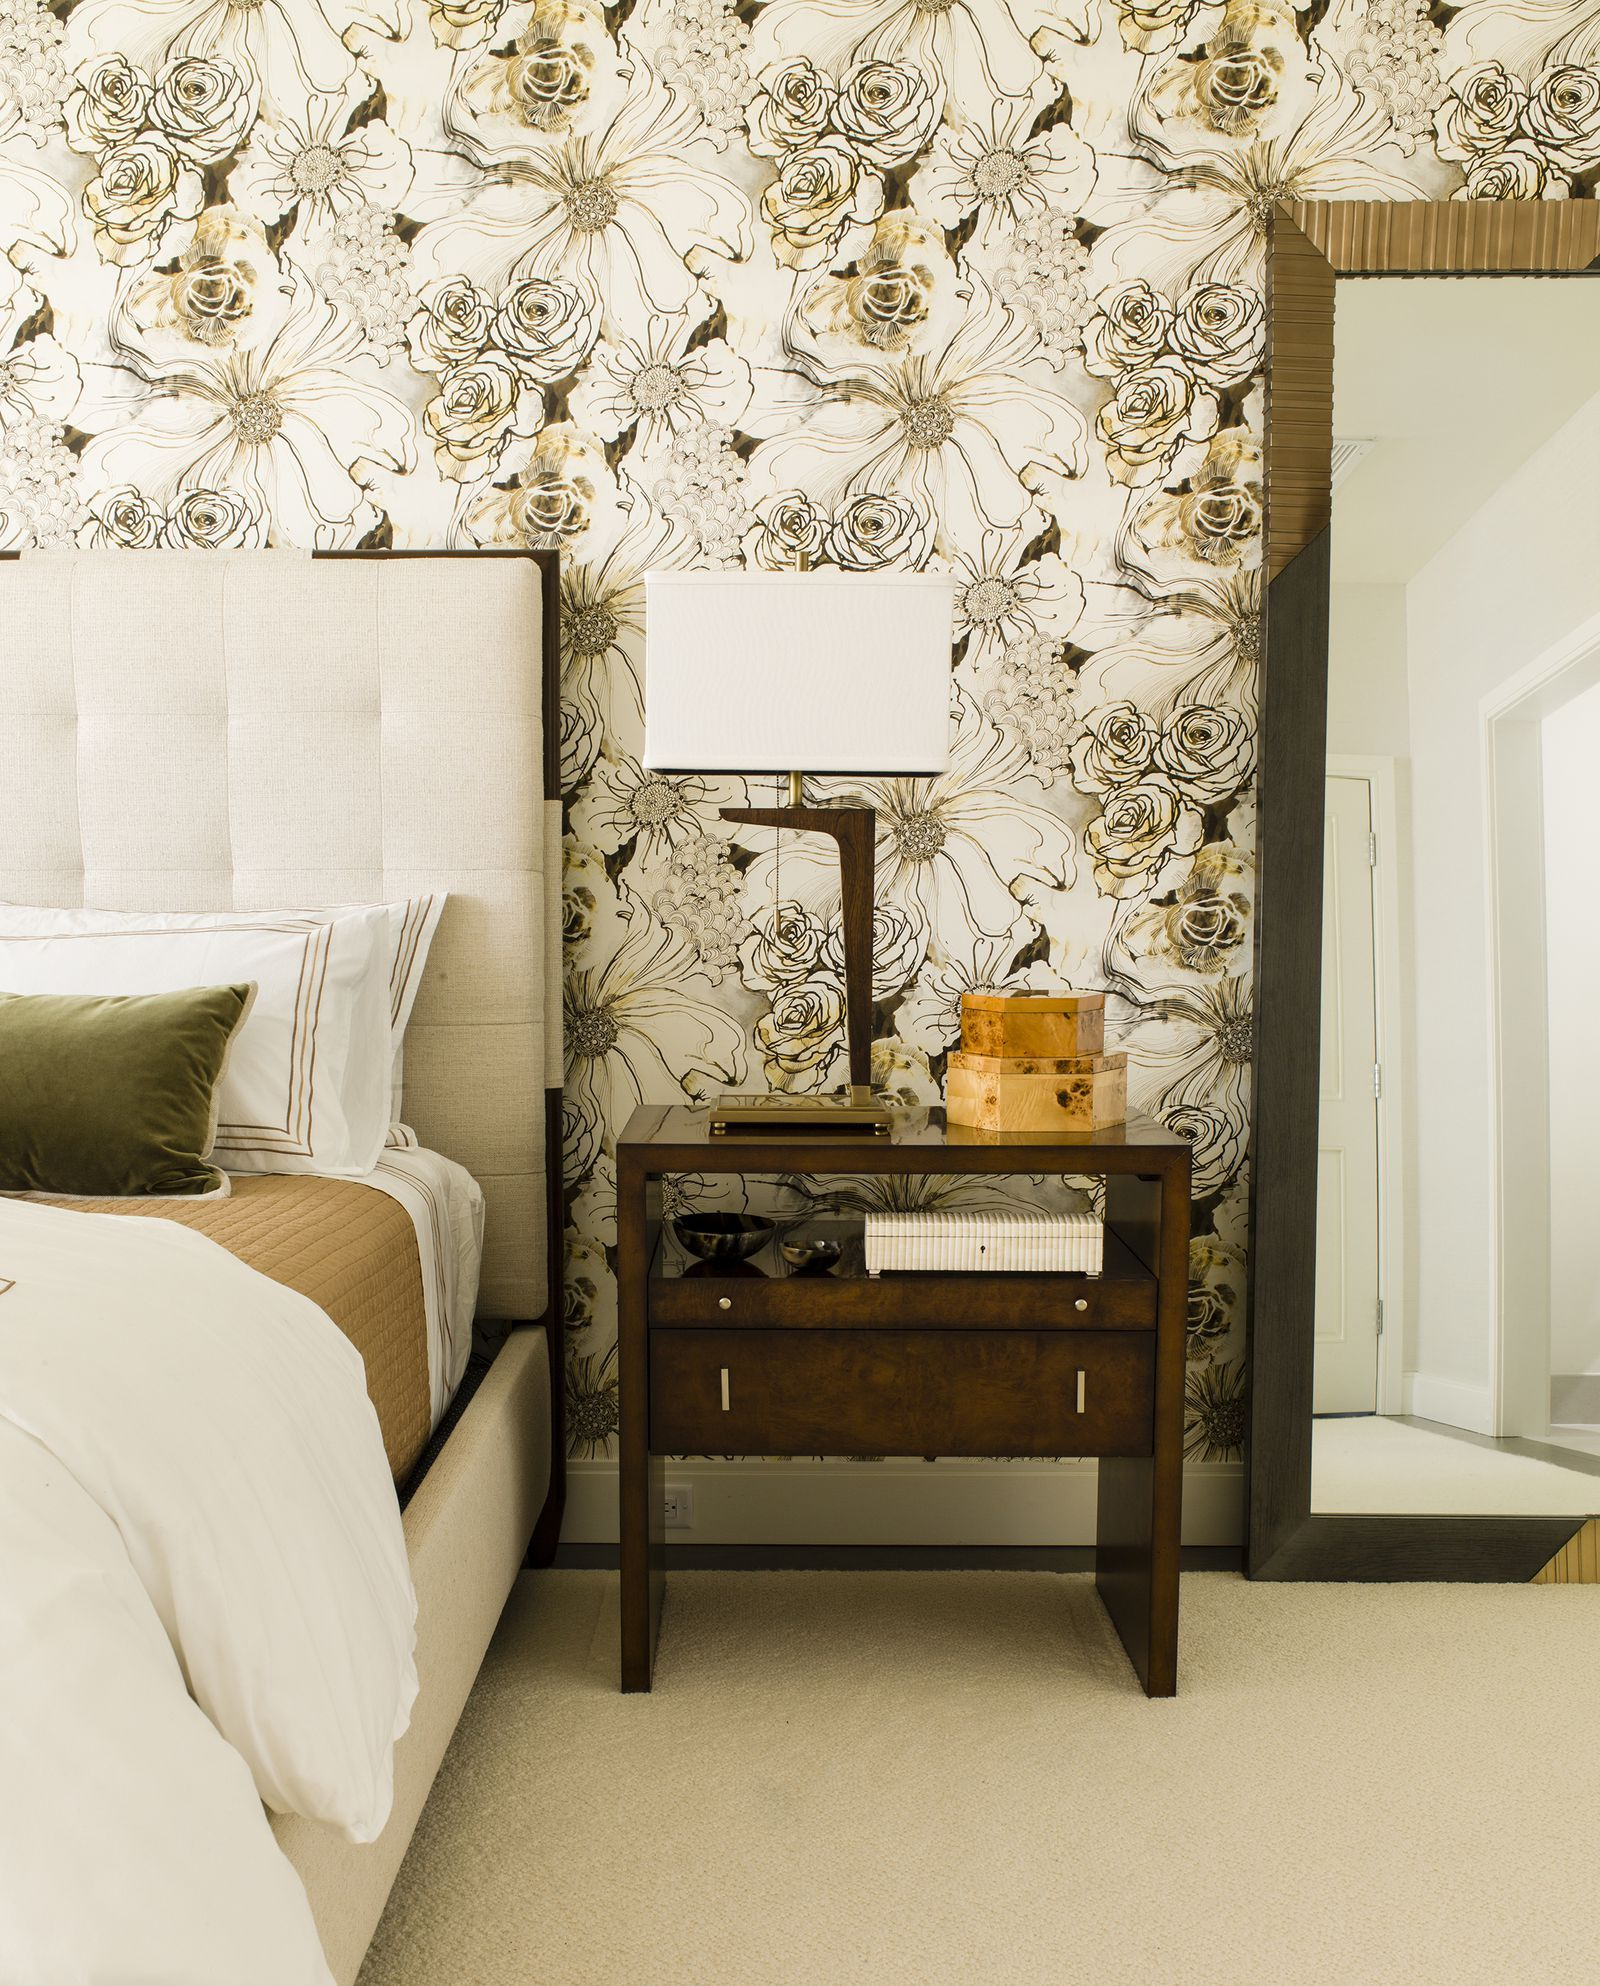 30 Bedrooms With Statement Wallpaper Wallpaper Design For